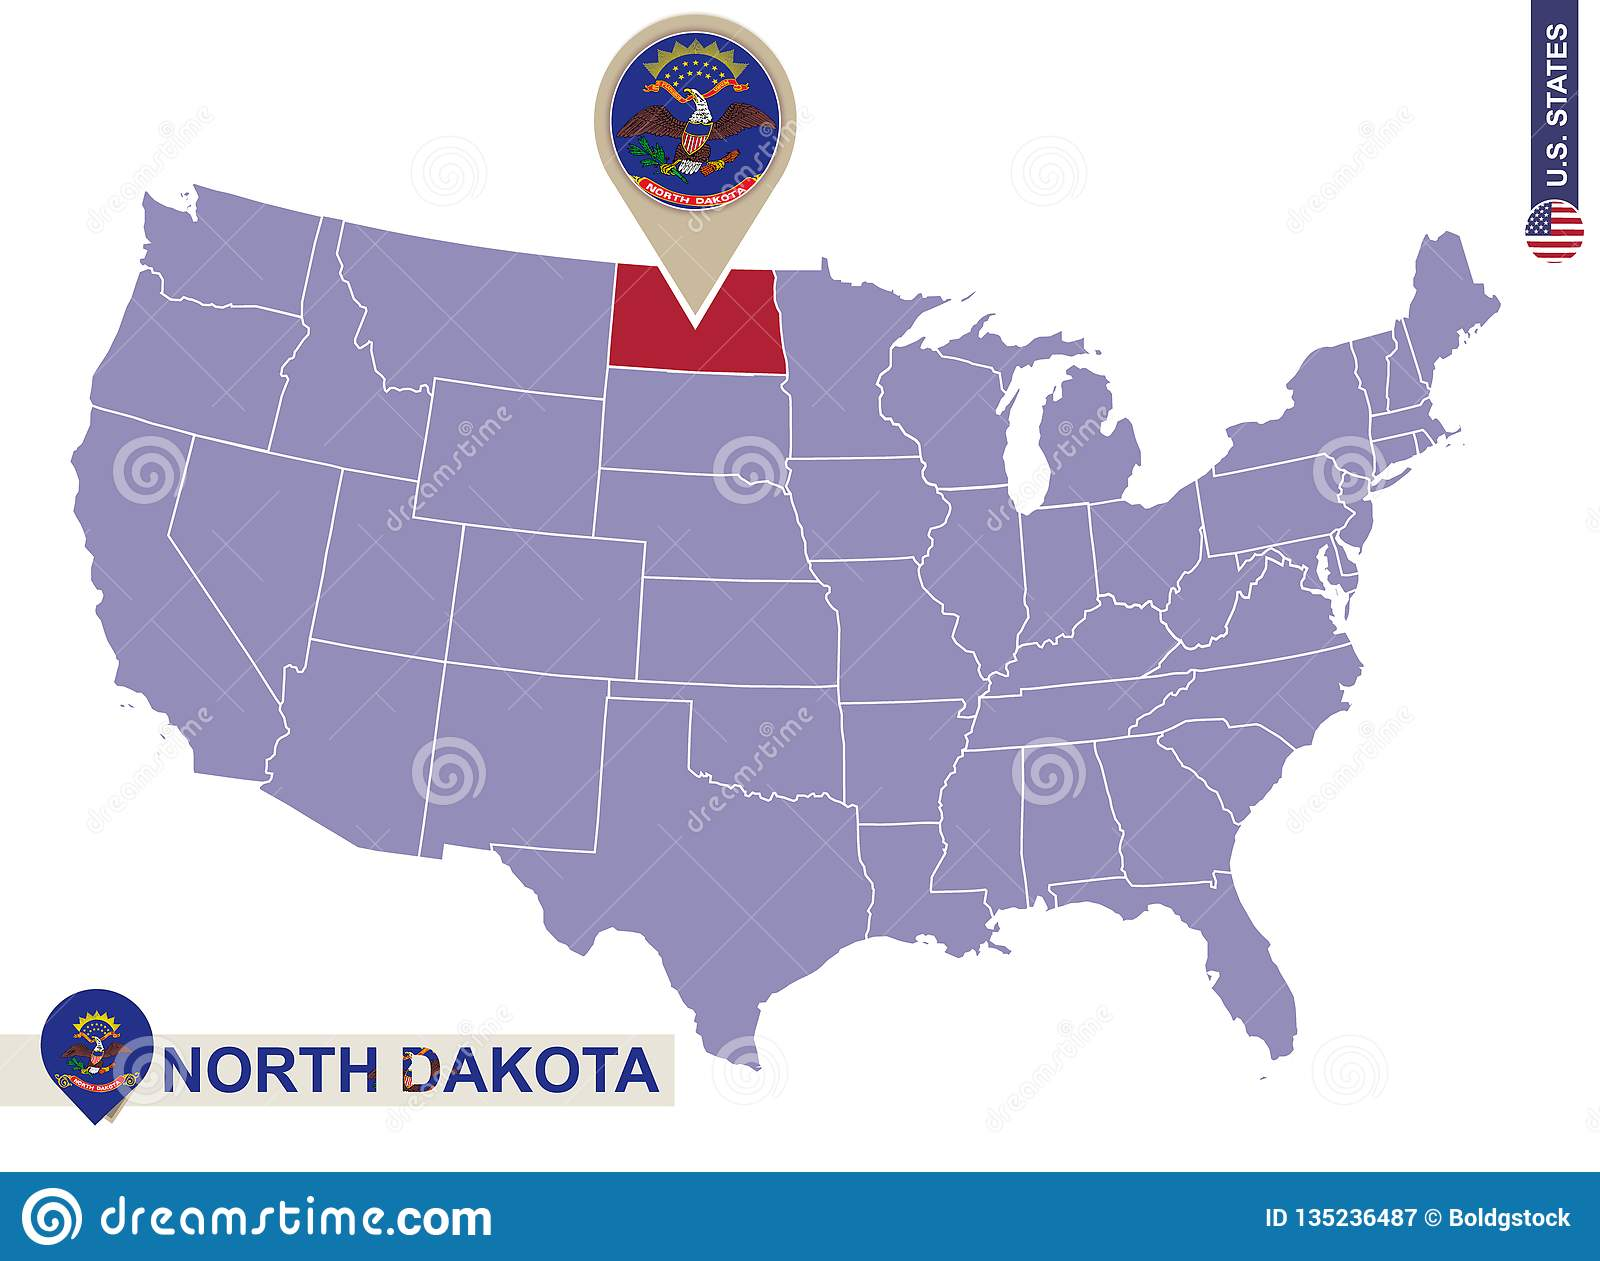 North Dakota State On USA Map. North Dakota Flag And Map Stock ... on